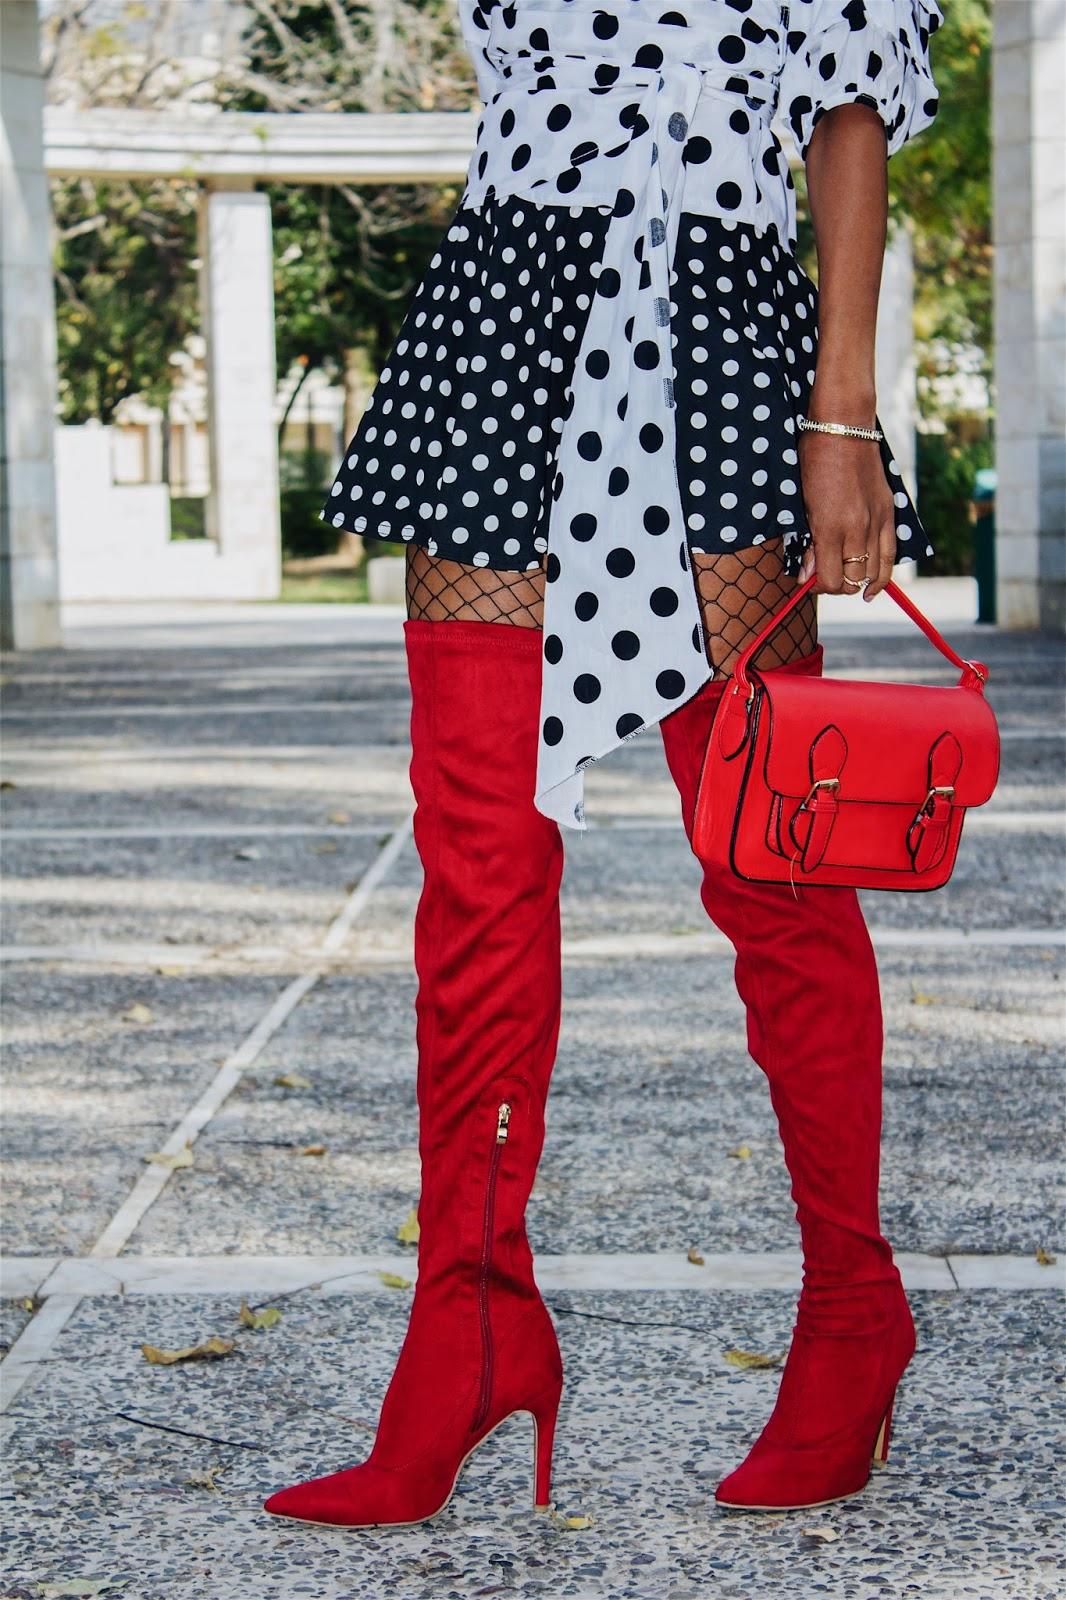 33a54960c48 Shop this BANDAGE LAYERED SLEEVE POLKA DOT BLOUSE and my RED OVER-THE-KNEE  BOOTS from Chicme and more!!!! Happy Shopping!! Thank you for reading!!xoxo